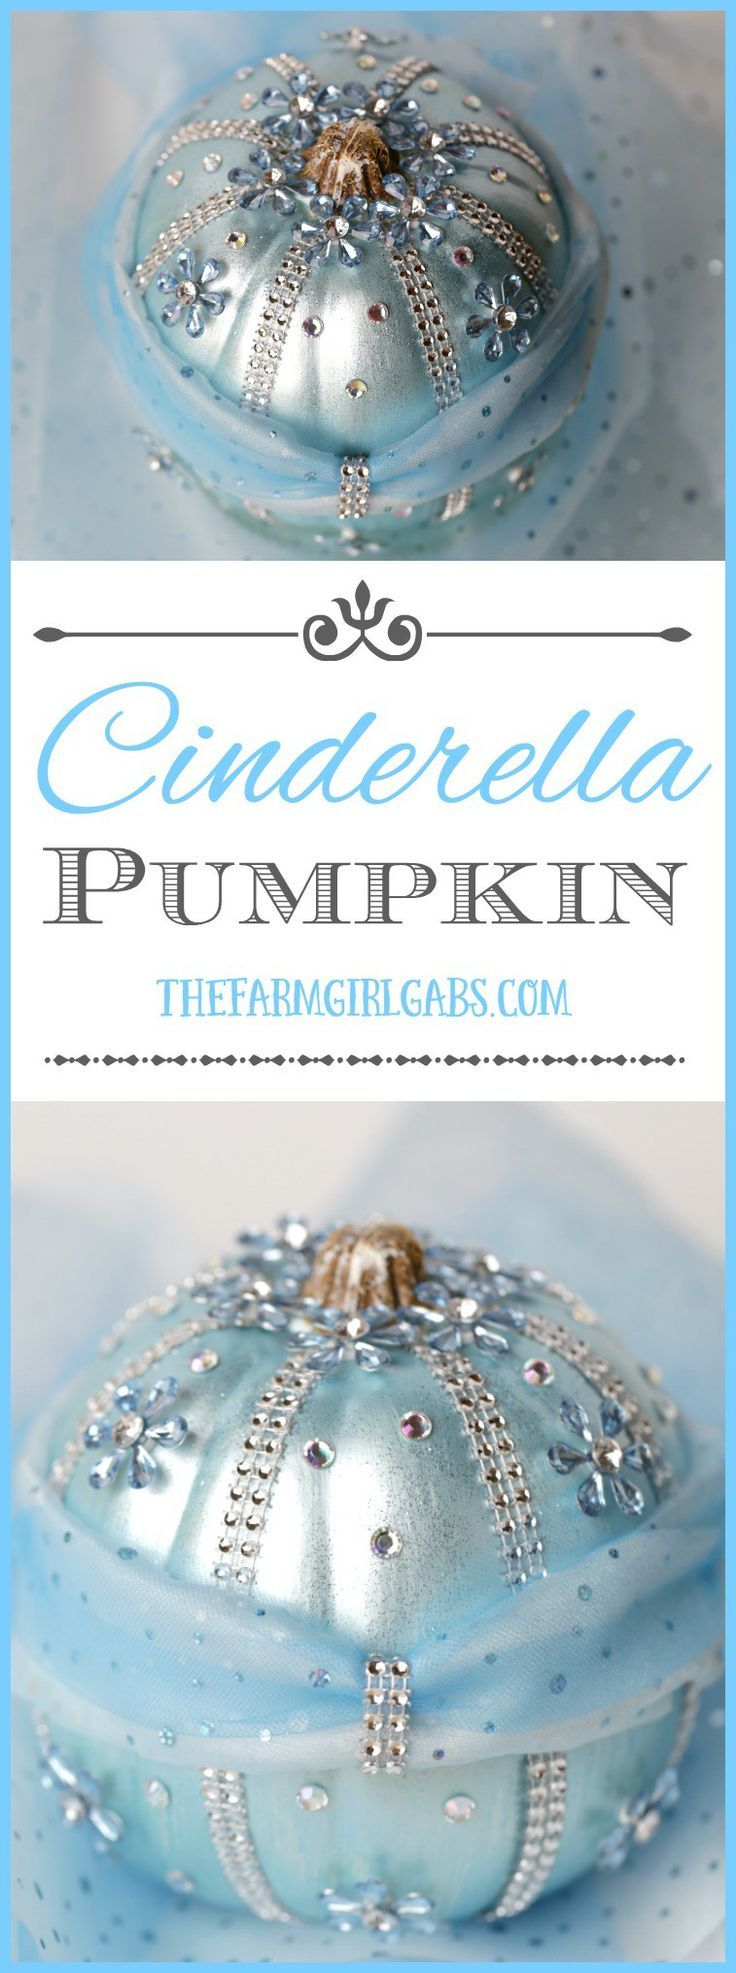 Best 20+ Cinderella pumpkin ideas on Pinterest | Disney party ...